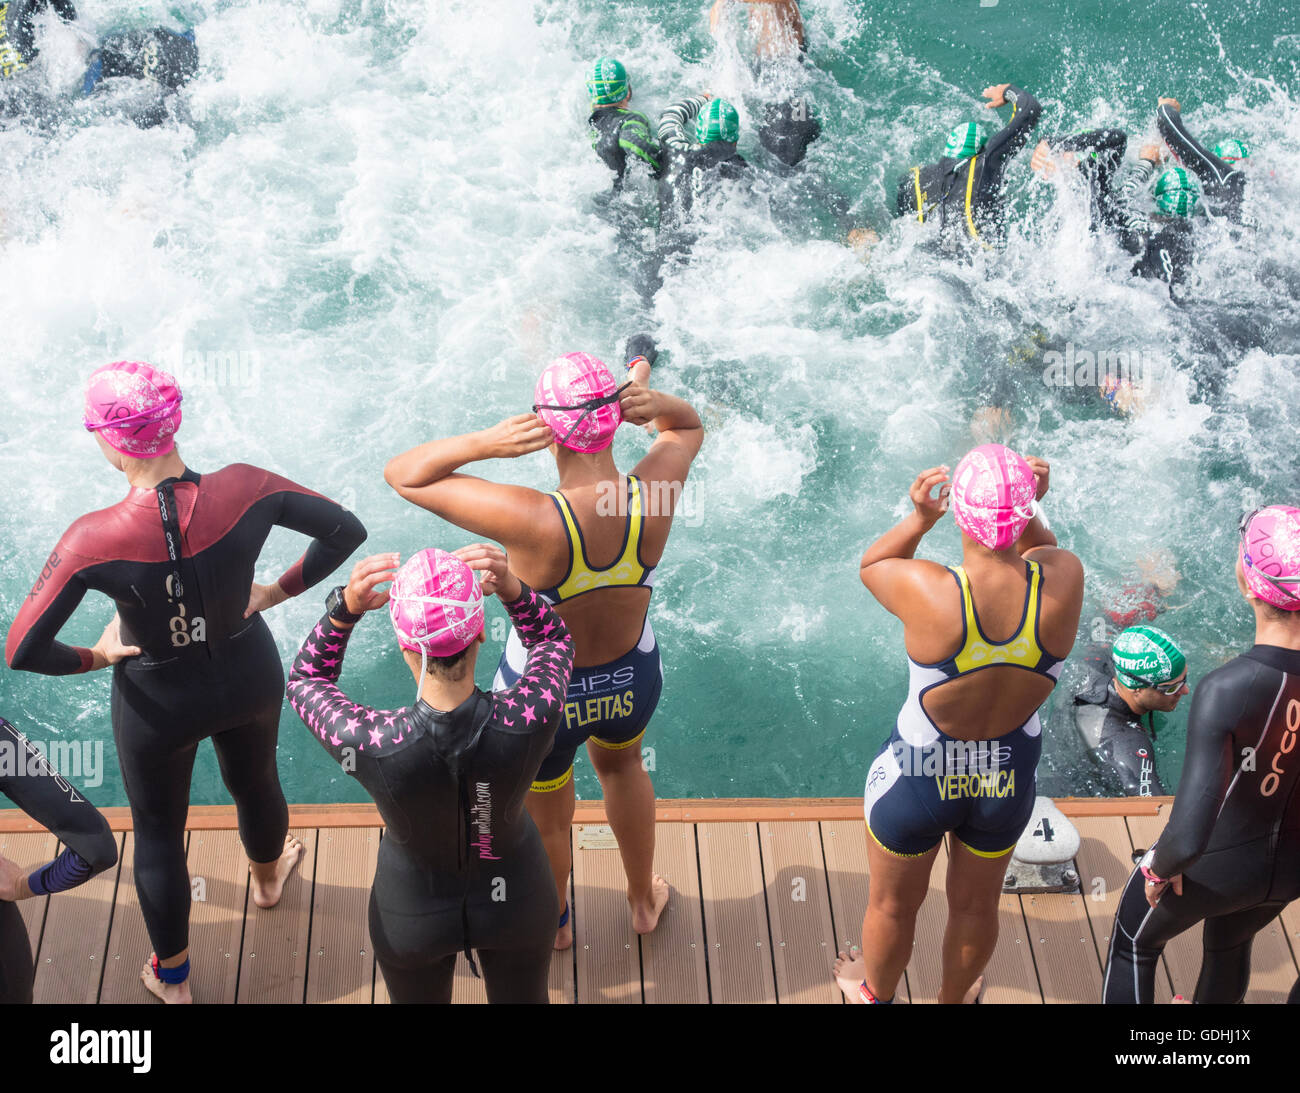 Las Palmas, Gran Canaria, Canary Islands, Spain. 17th July, 2016. Start of the 1500m swim in the Atlantic Ocean - Stock Image